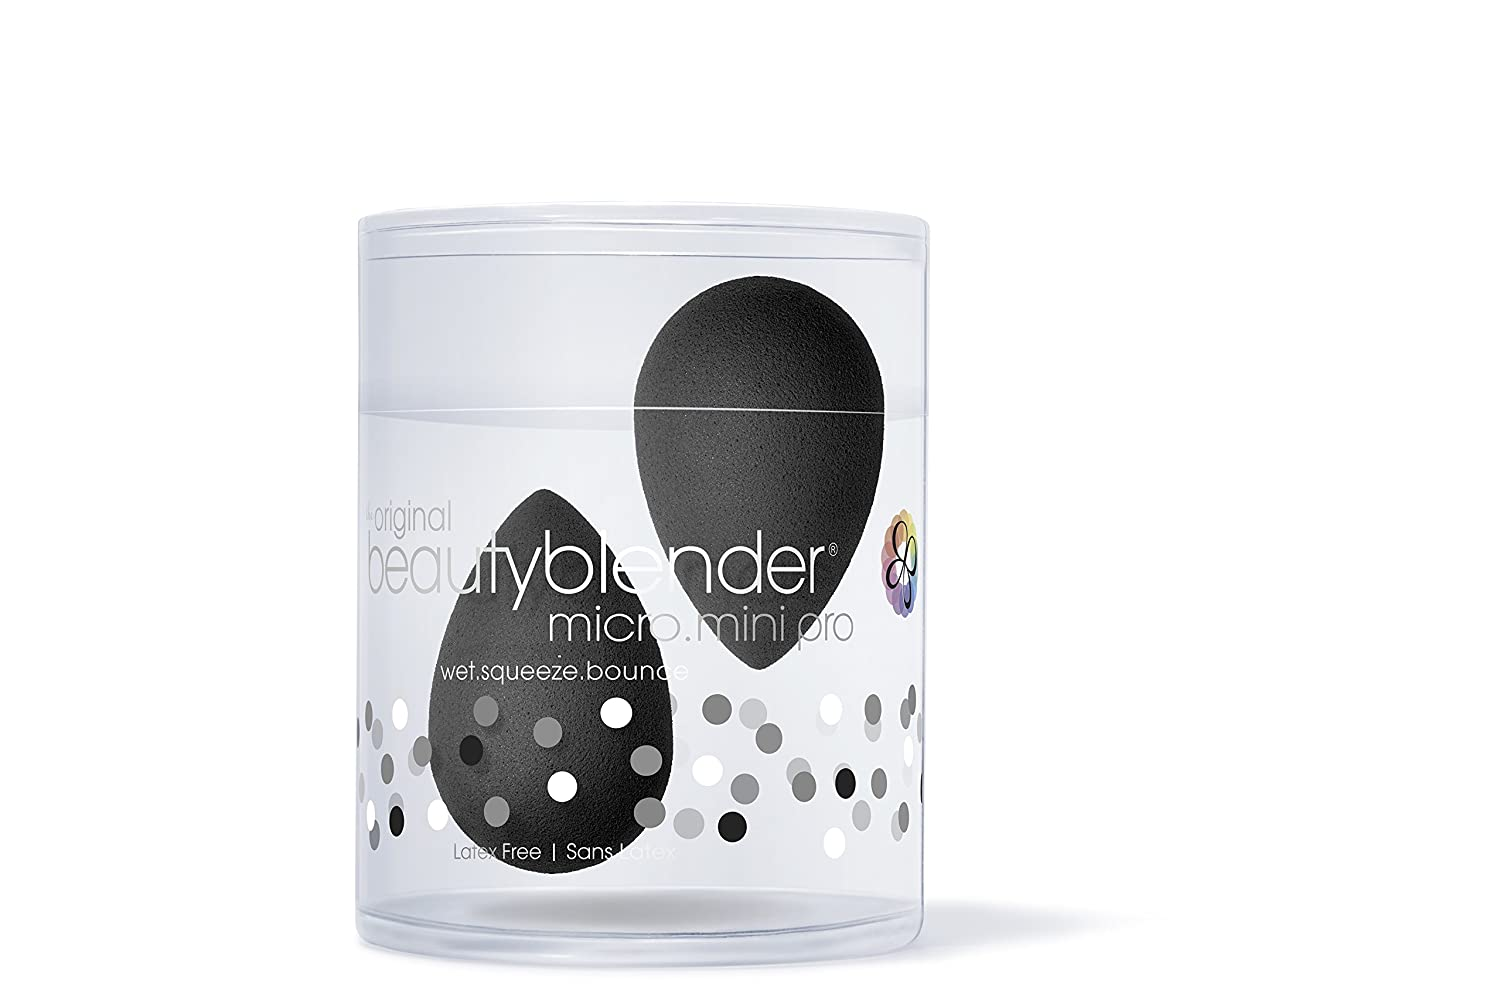 beautyblender micro.mini pro: Mini Makeup Sponges perfect for Darker-Toned Contouring, Highlighting & Concealing